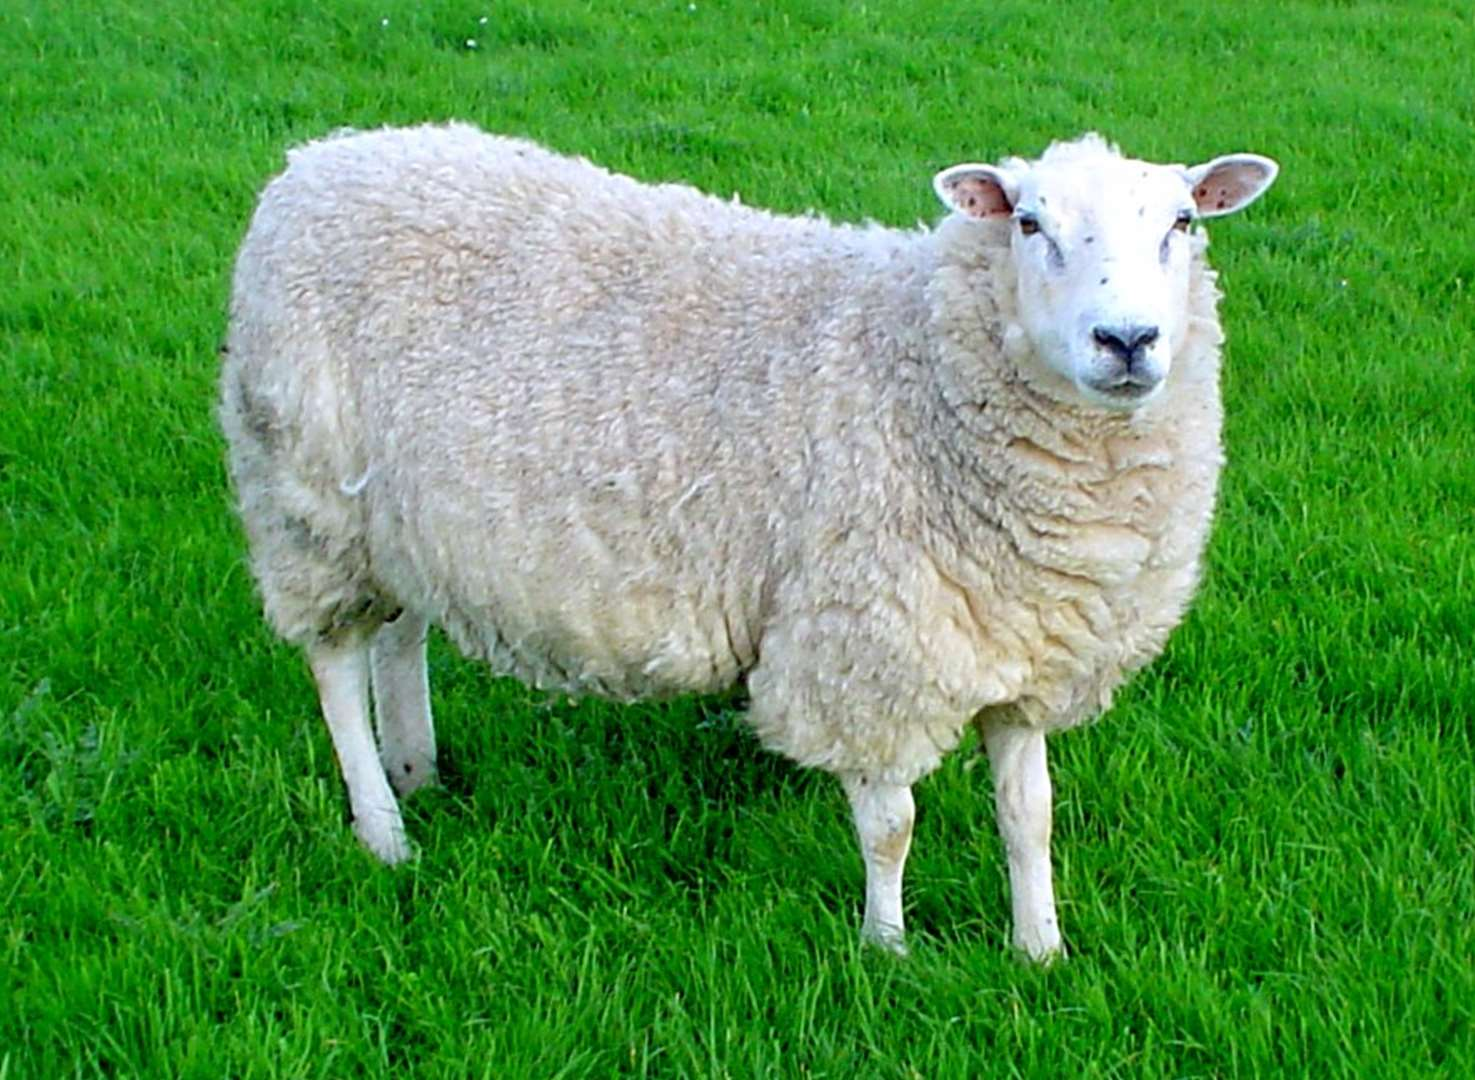 Horror as rotting sheep and lambs discovered in field